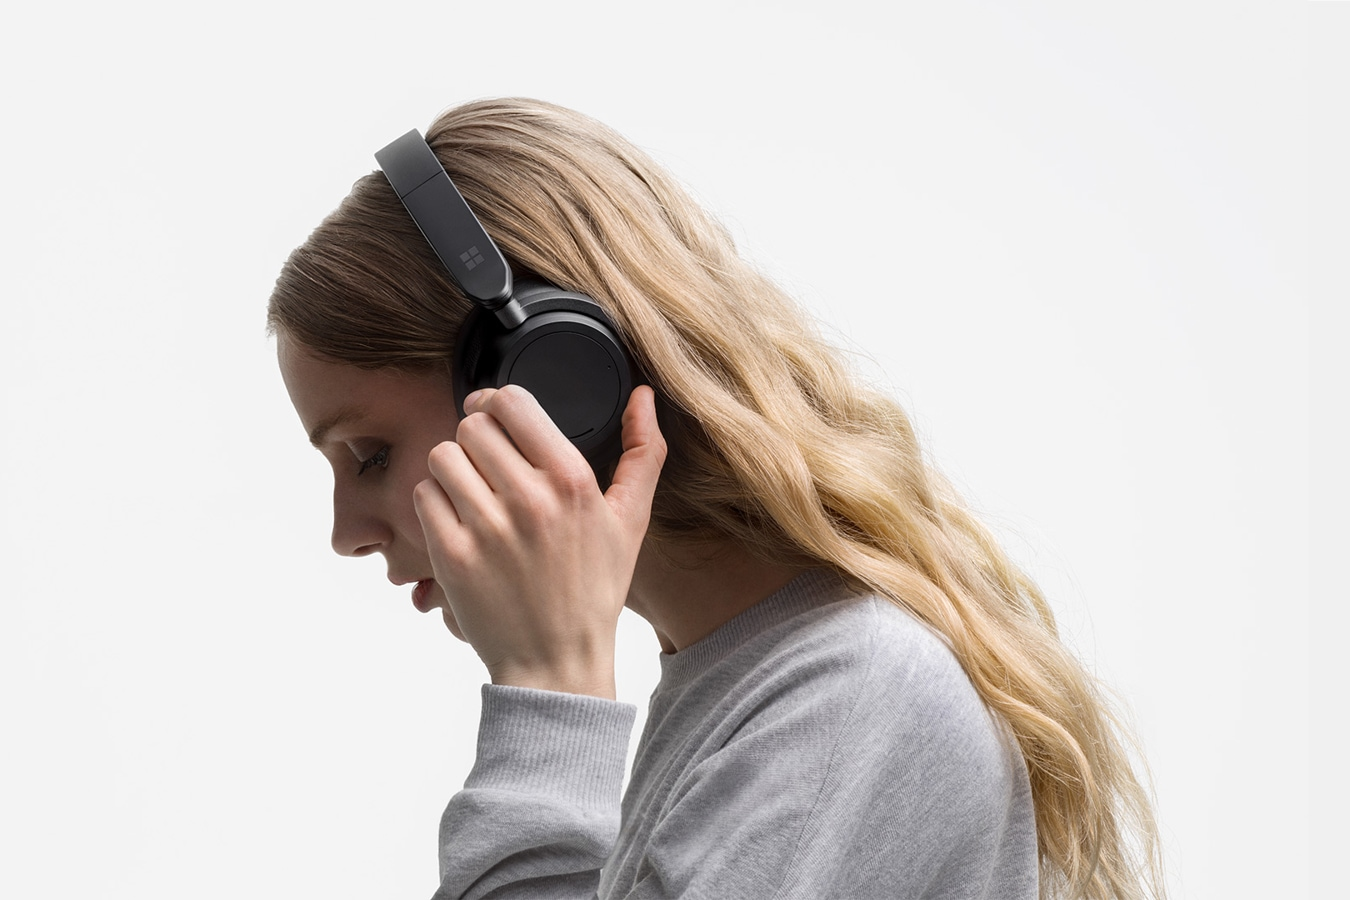 A person is shown wearing Surface Headphones 2